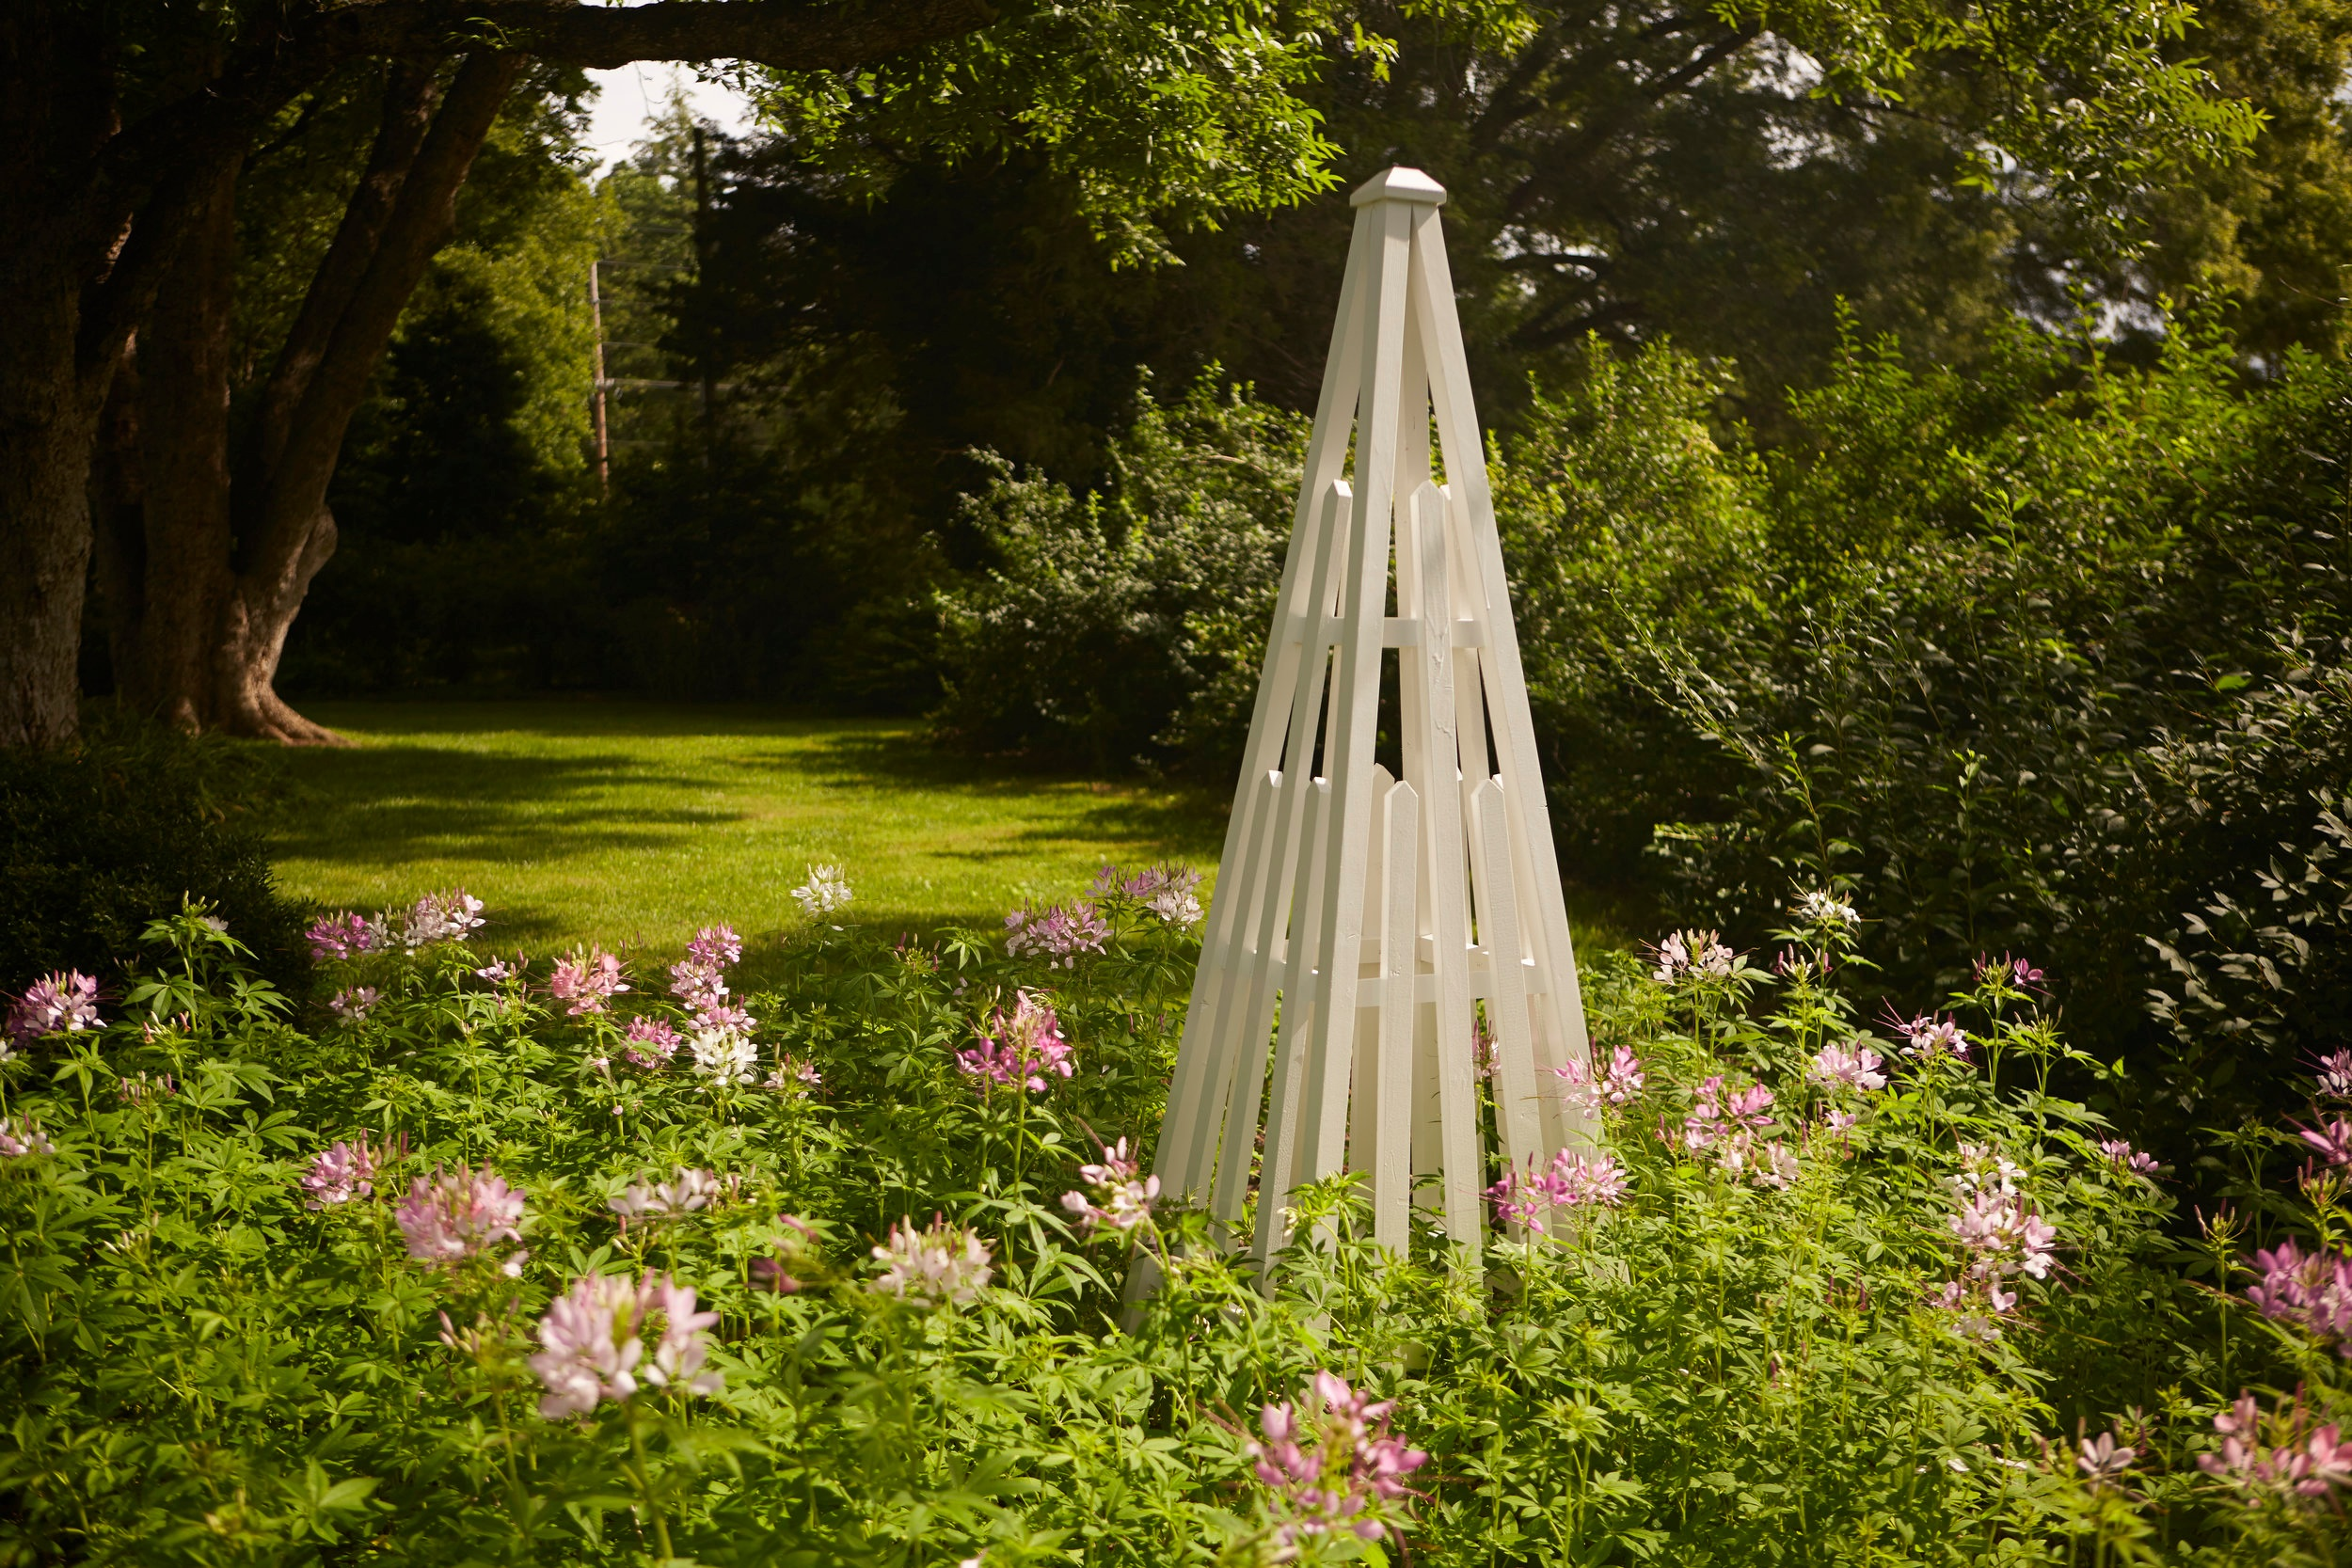 Garden Obelisk - Available in 5', 6', and 7' heights. Contact info@eastovercollection for pricing.